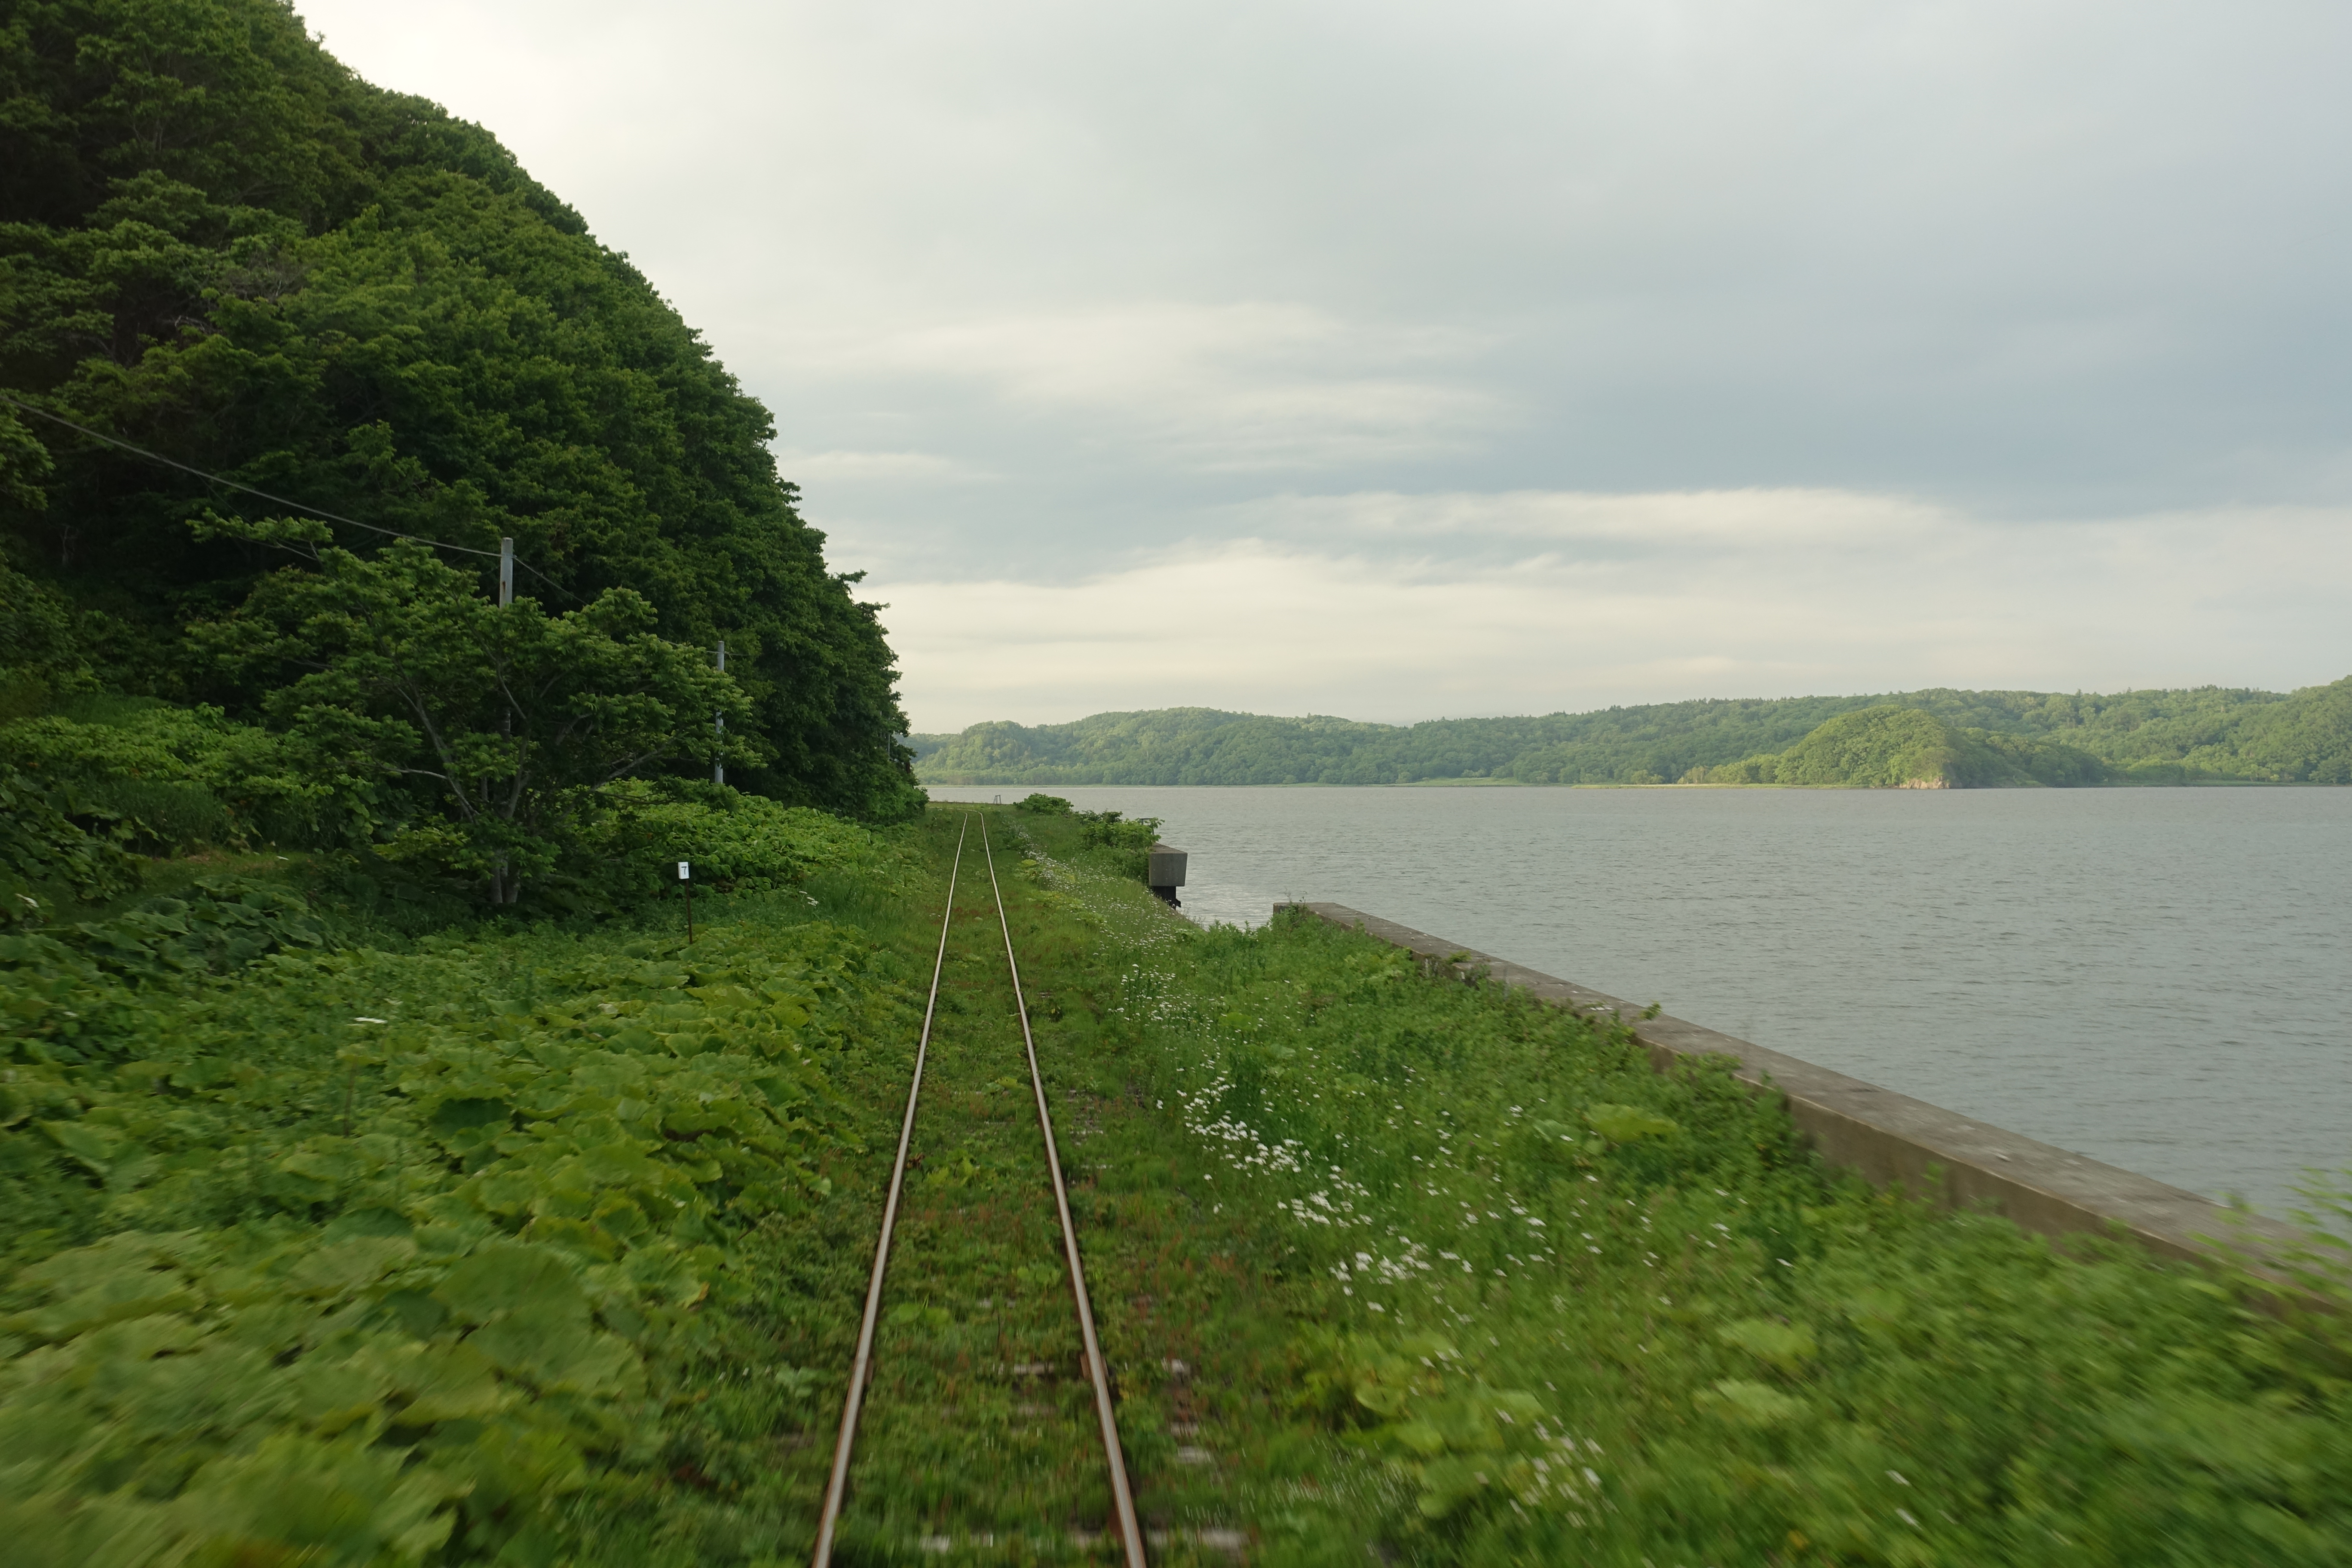 Tracks beside a lake